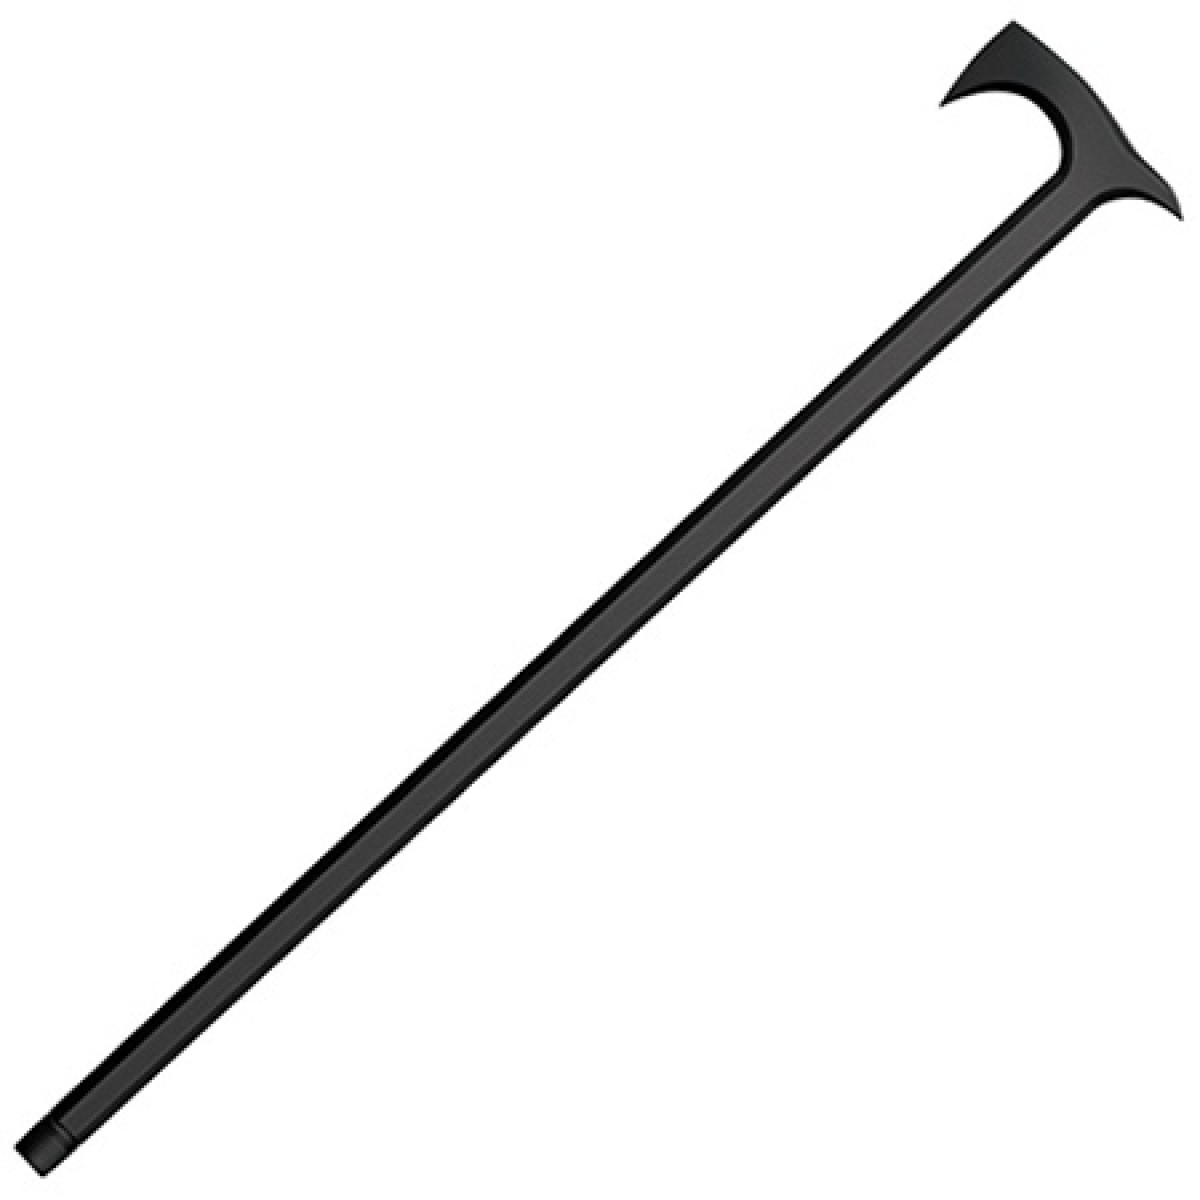 COLD STEEL Axe Head Cane